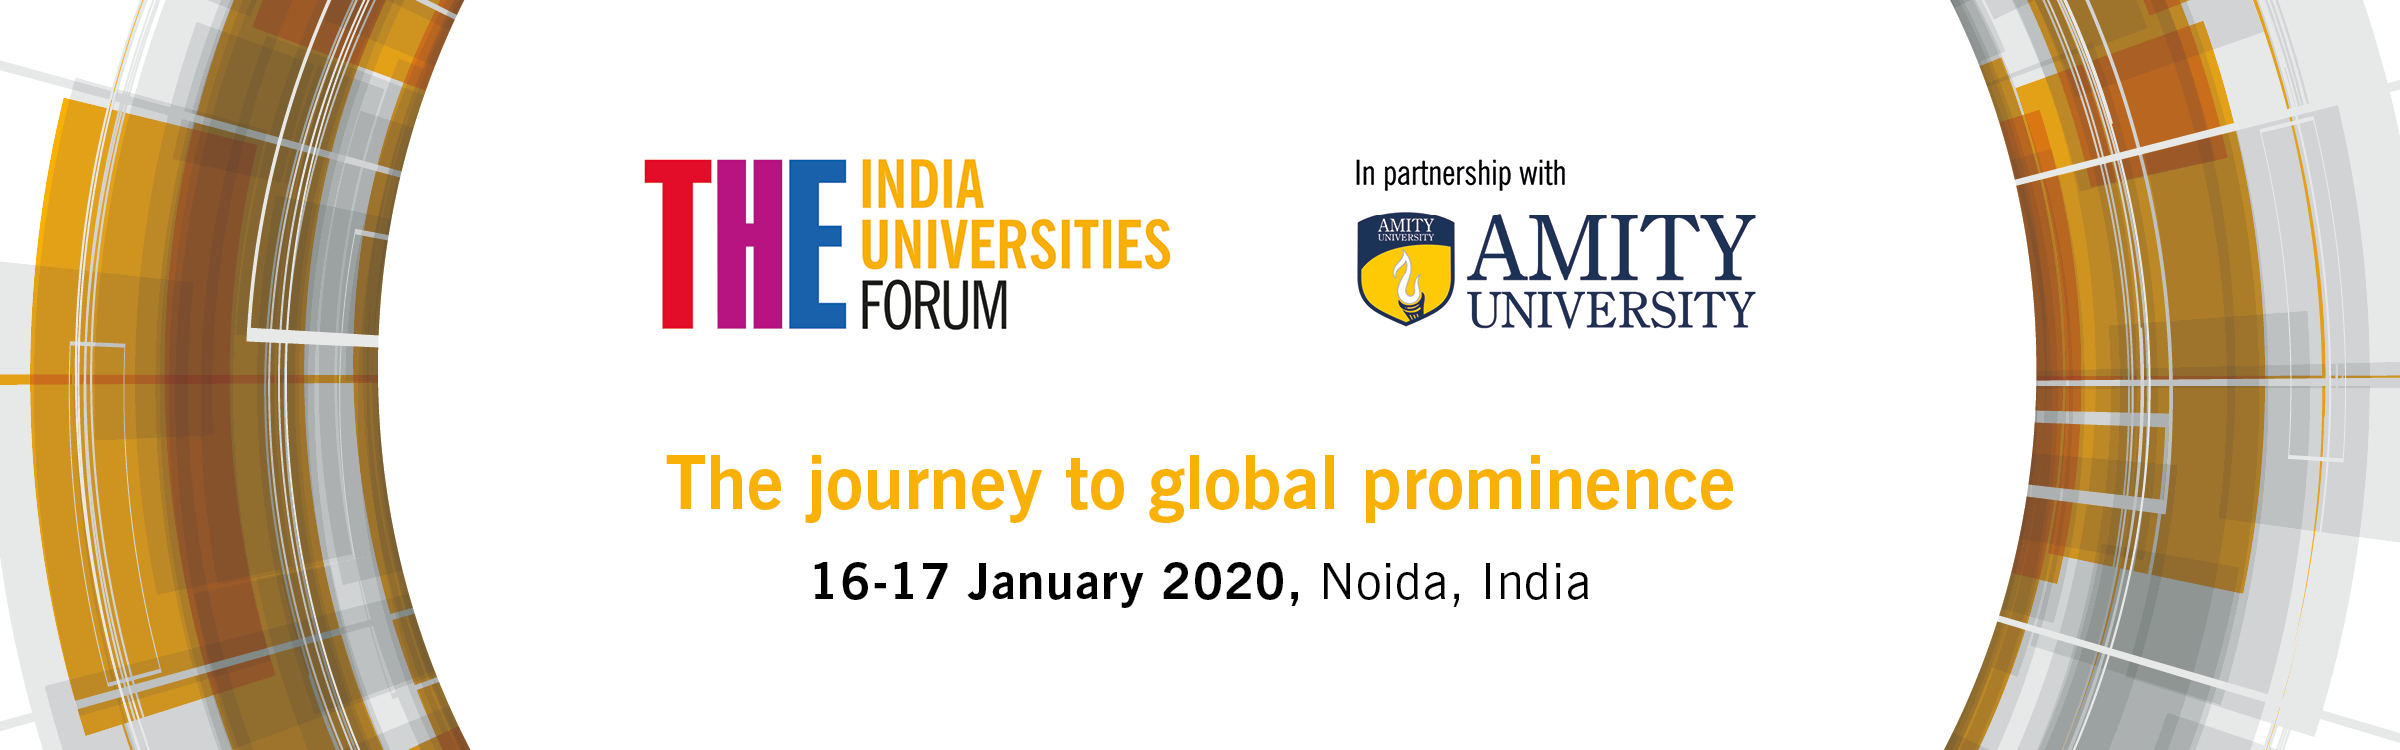 THE India Universities Forum 2020